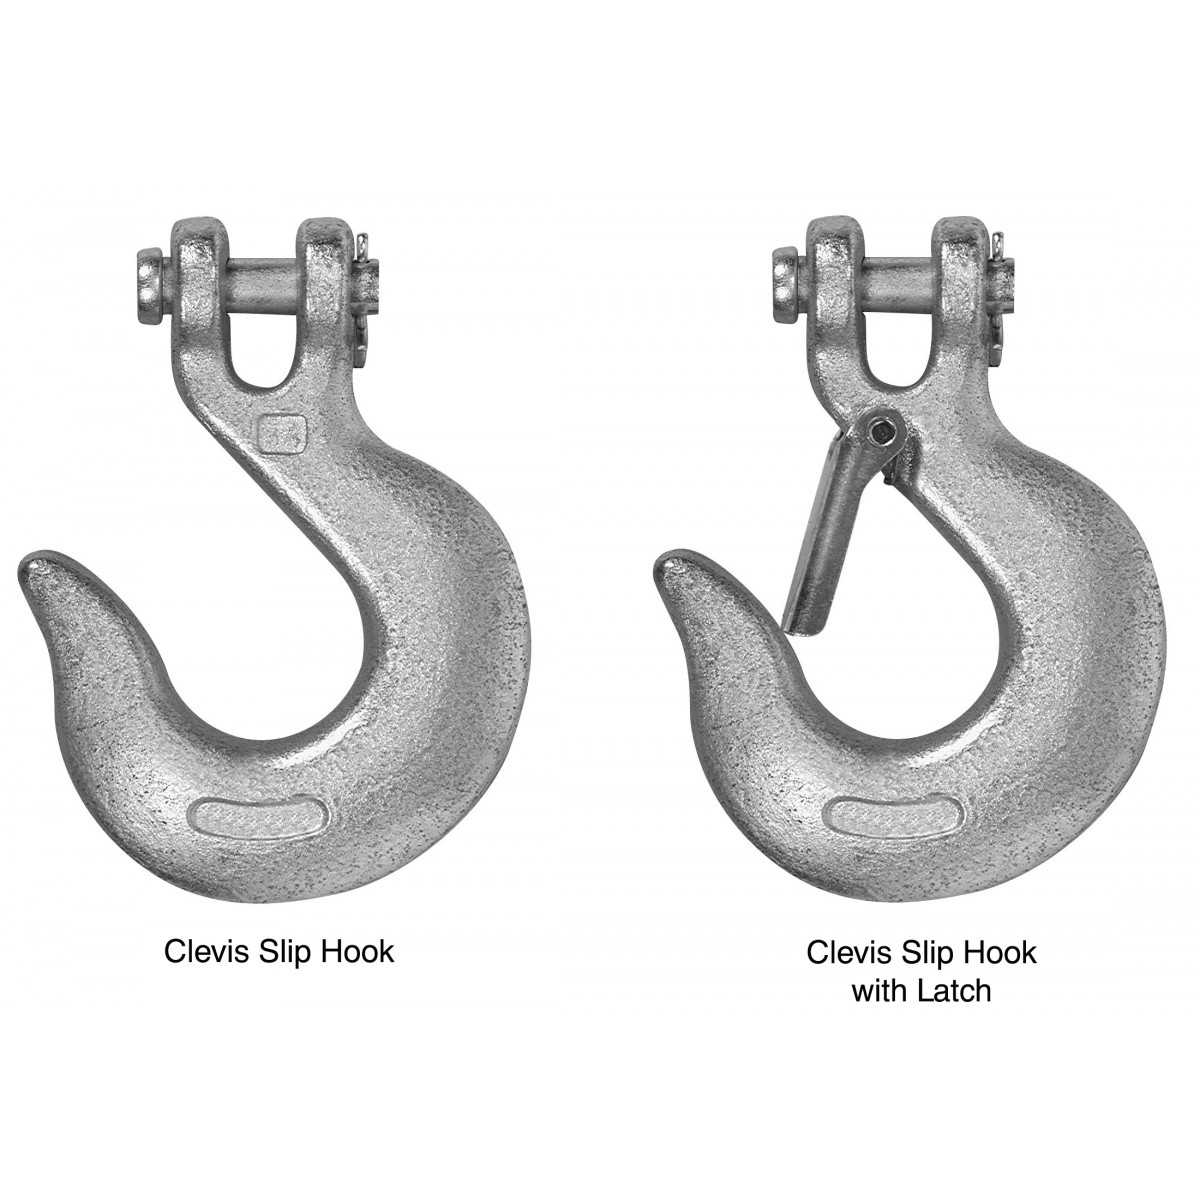 Picture of Campbell T9401624 Clevis Slip Hook, 3/8 in Trade, 5400 lb Working Load, 43 Grade, Steel, Zinc